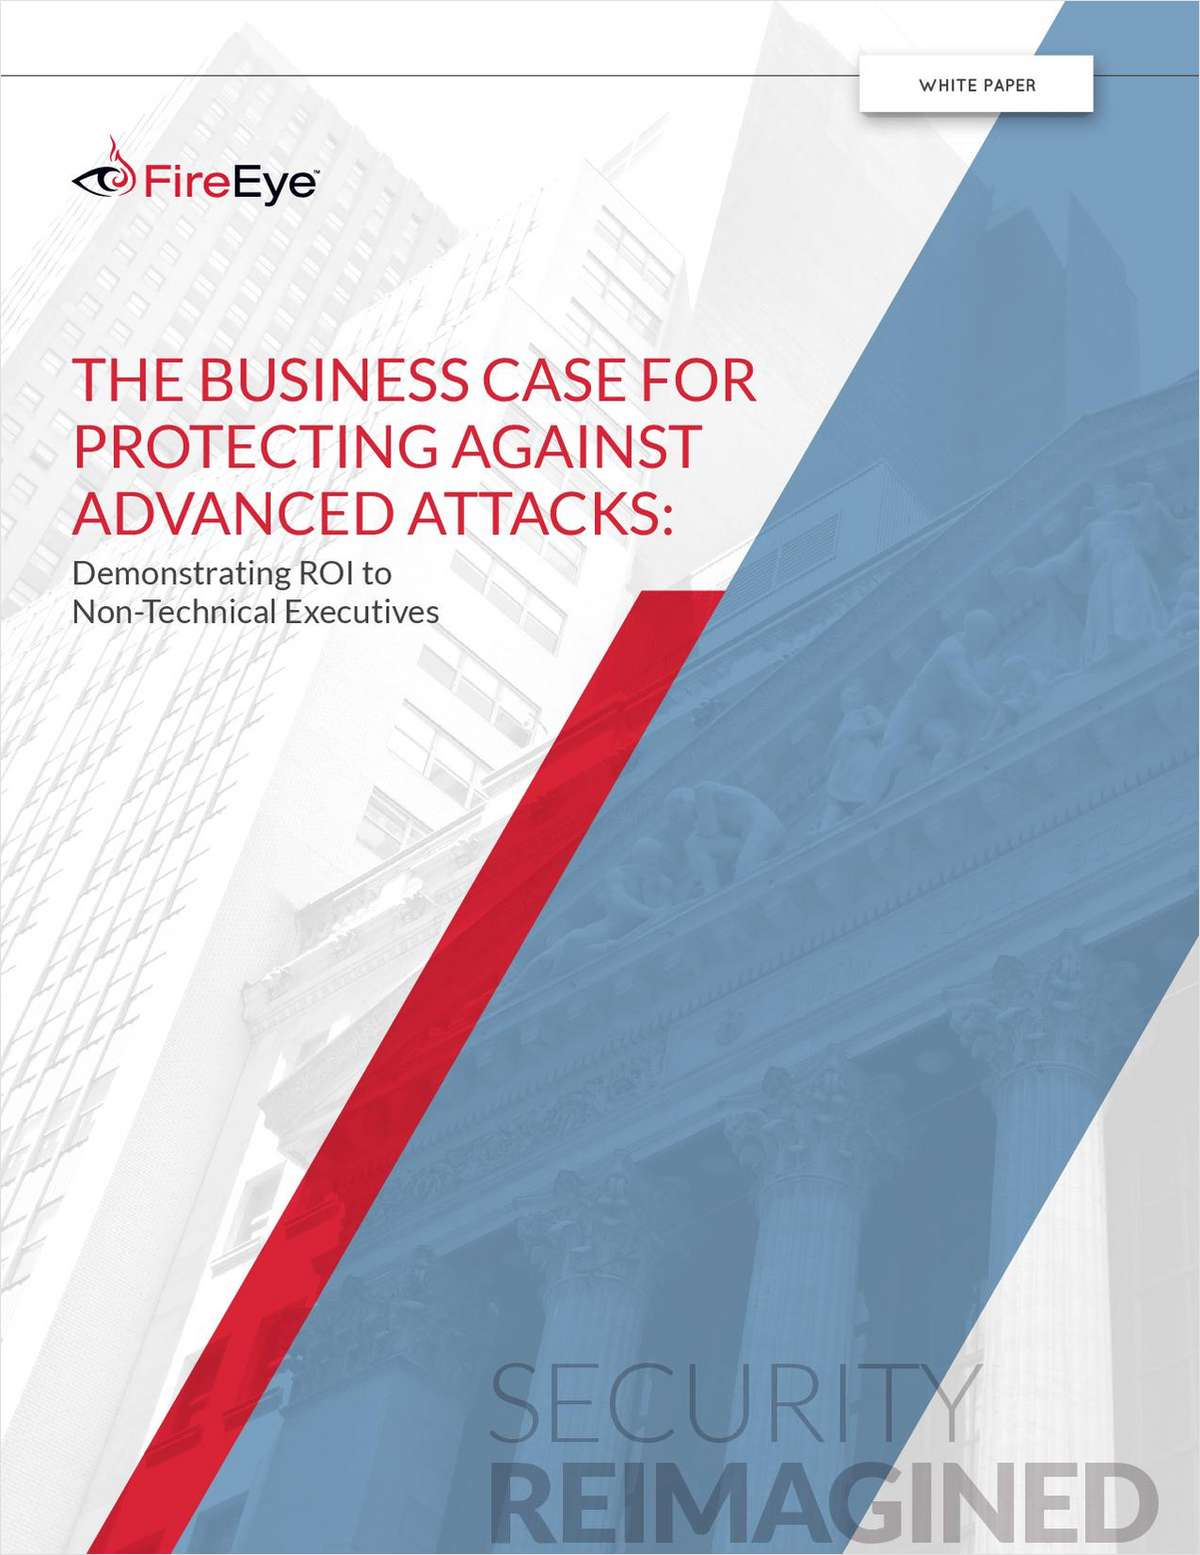 The Business Case for Protecting Against Advanced Attacks: Demonstrating ROI to Non-Technical Executives